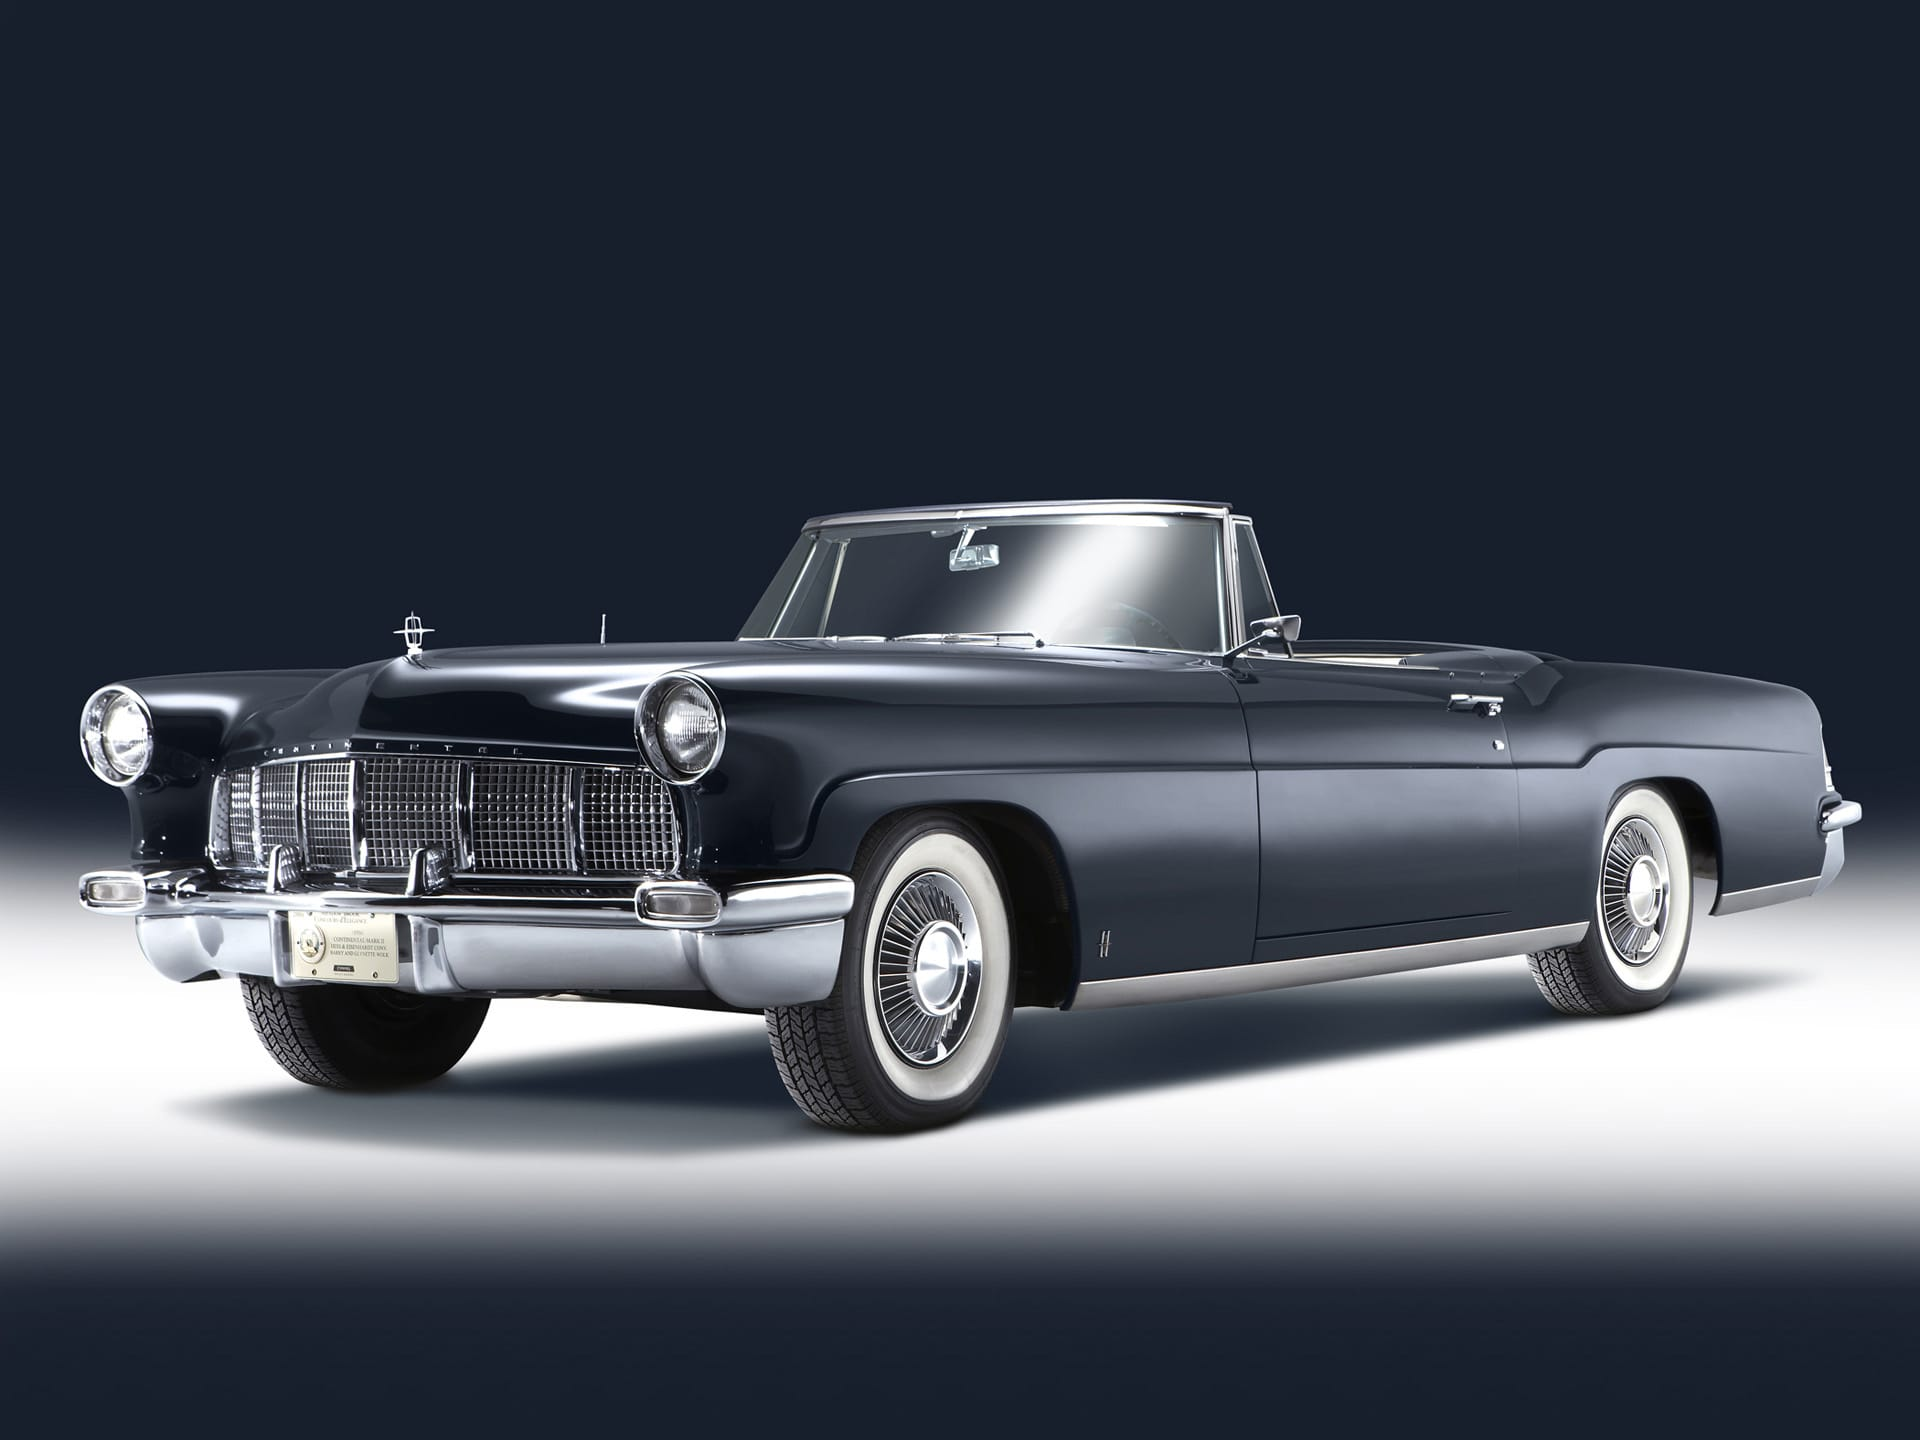 1956 Lincoln Mark II HQ wallpapers